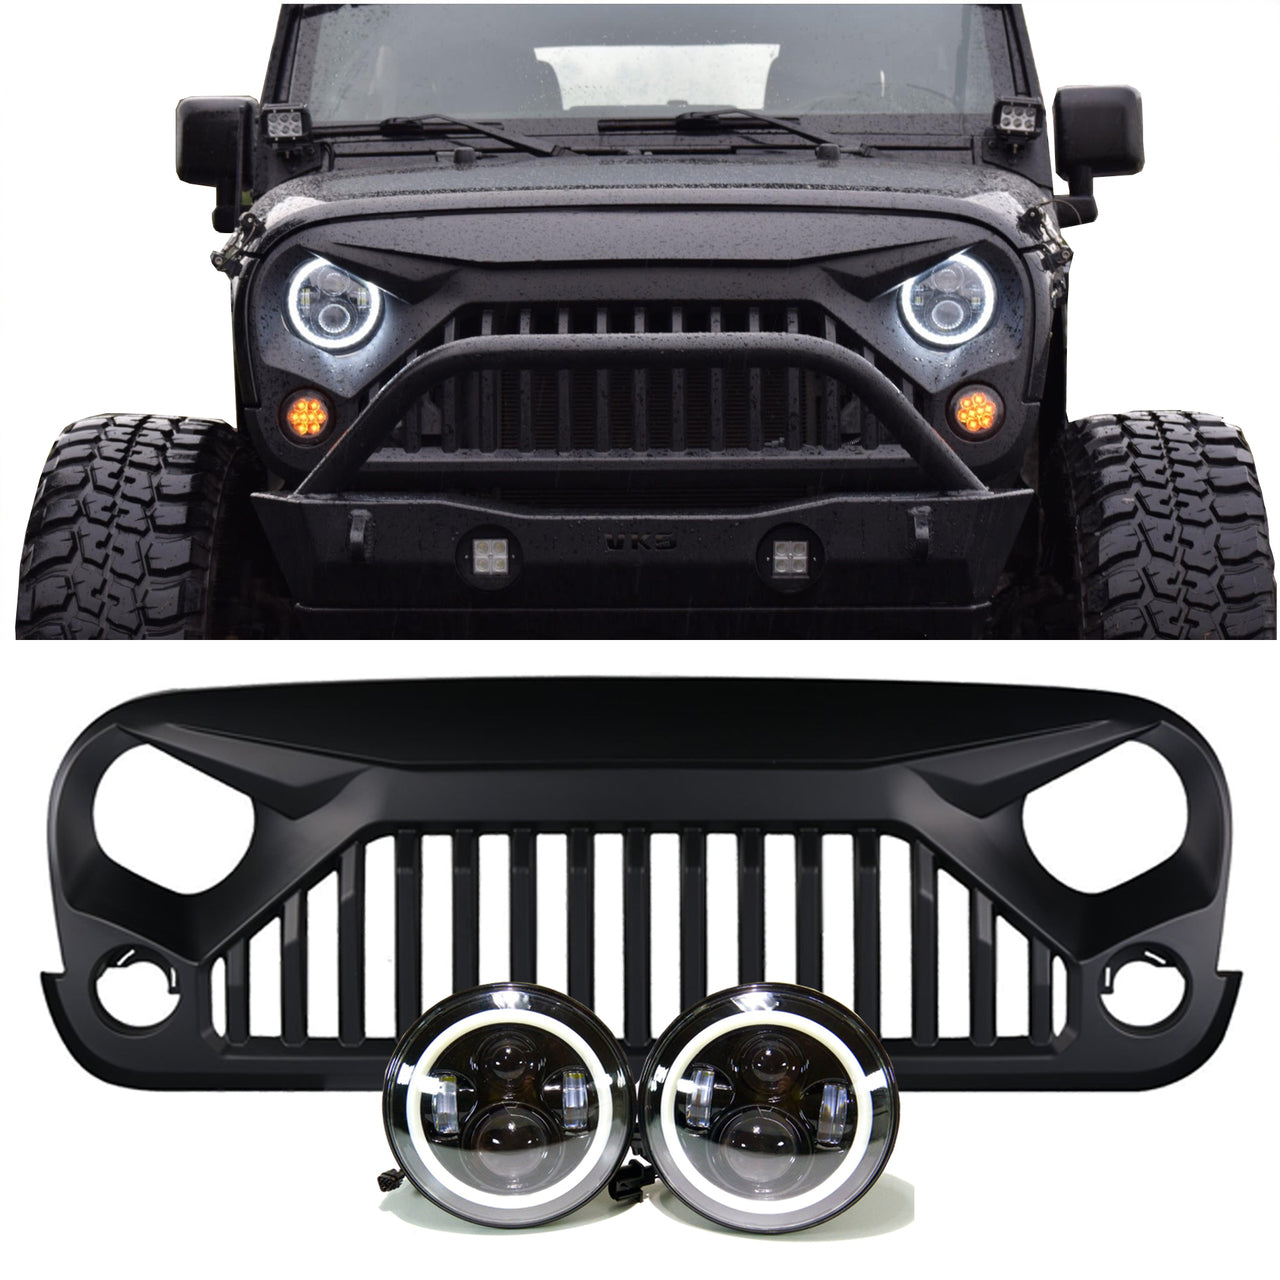 Halo Lights For Jeep Wrangler >> Jeep Wrangler Projector Headlights Halo Vader Grille